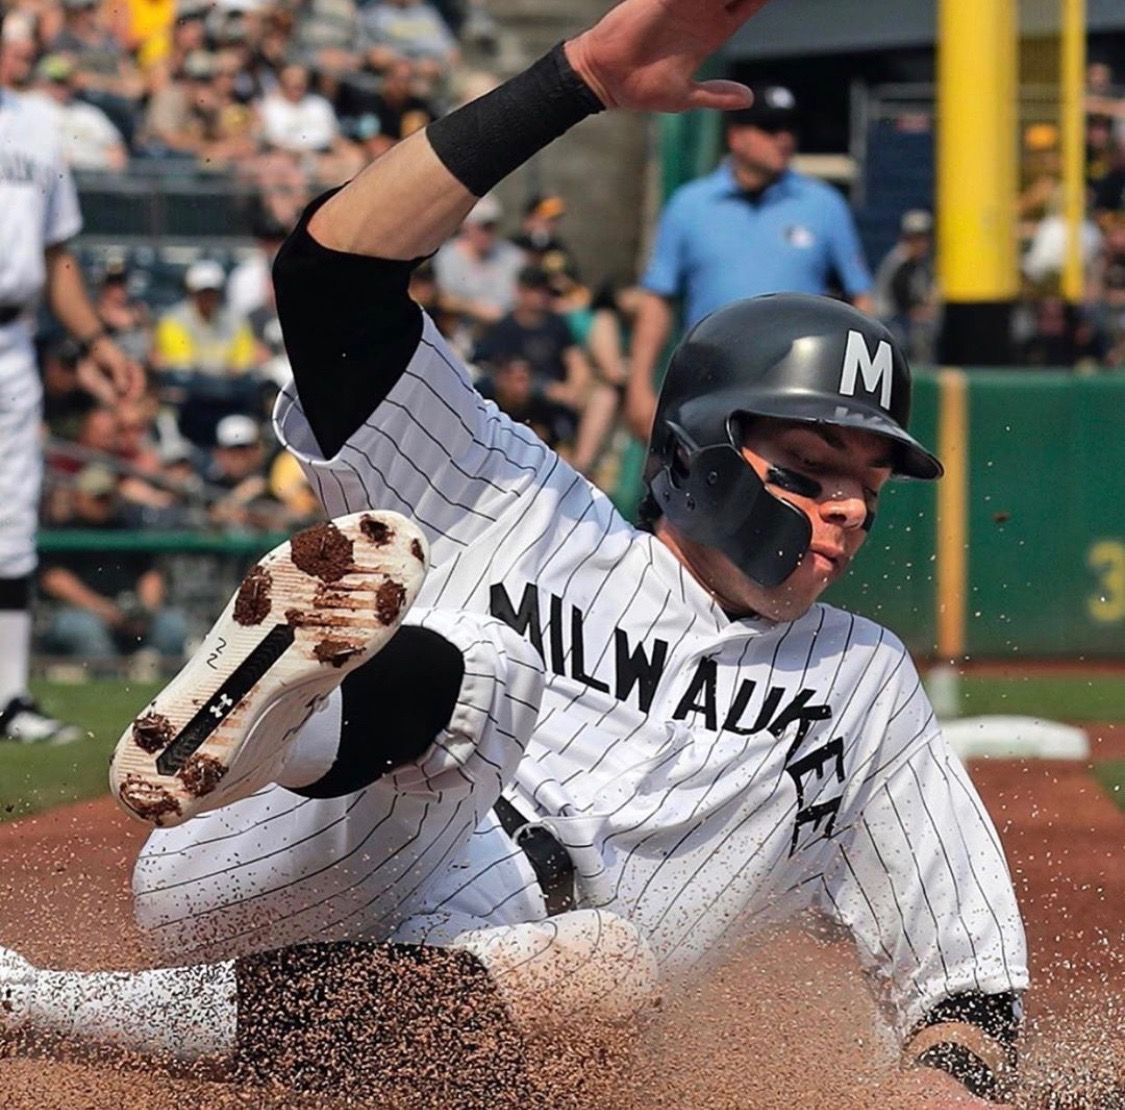 Pin by Maddie on Christian yelich (With images